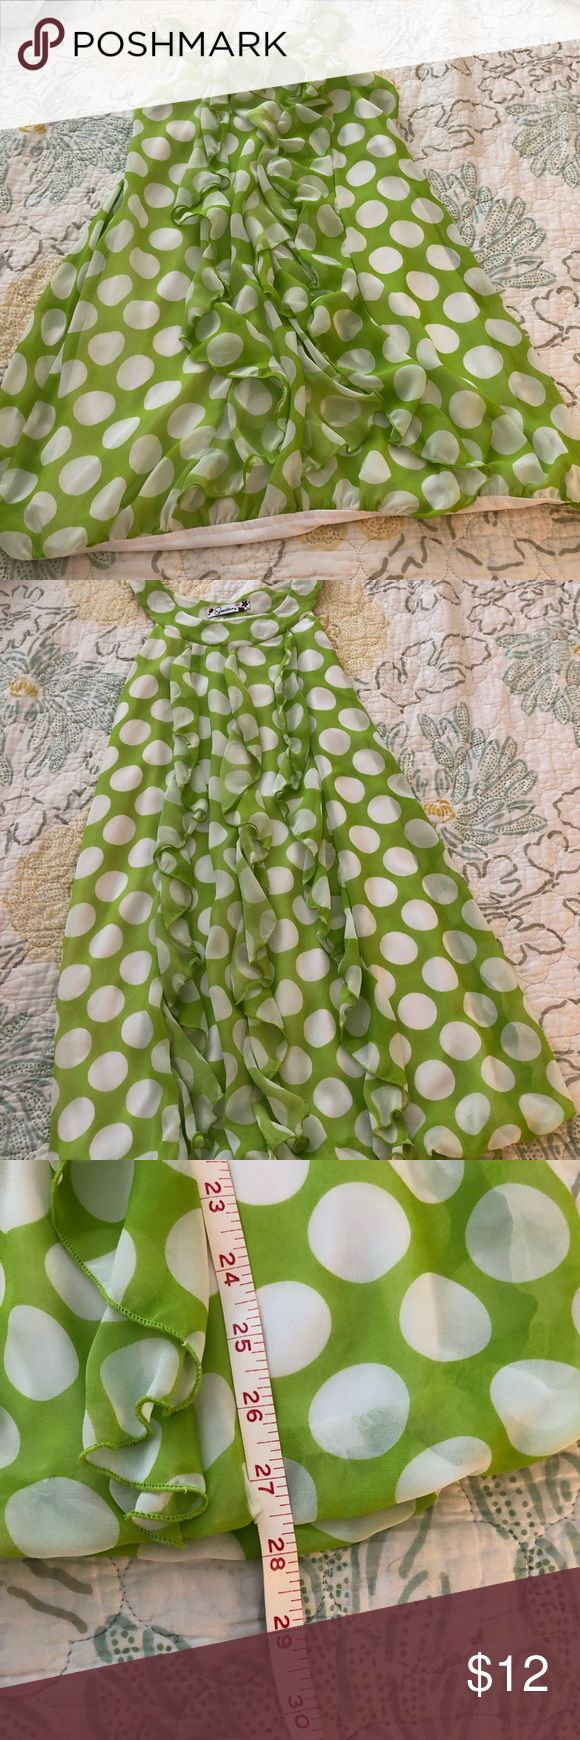 Cute Dress Green and white polka dot dress  Polyester  Size small  In good condition  Perfect for spring 🐣 Dresses